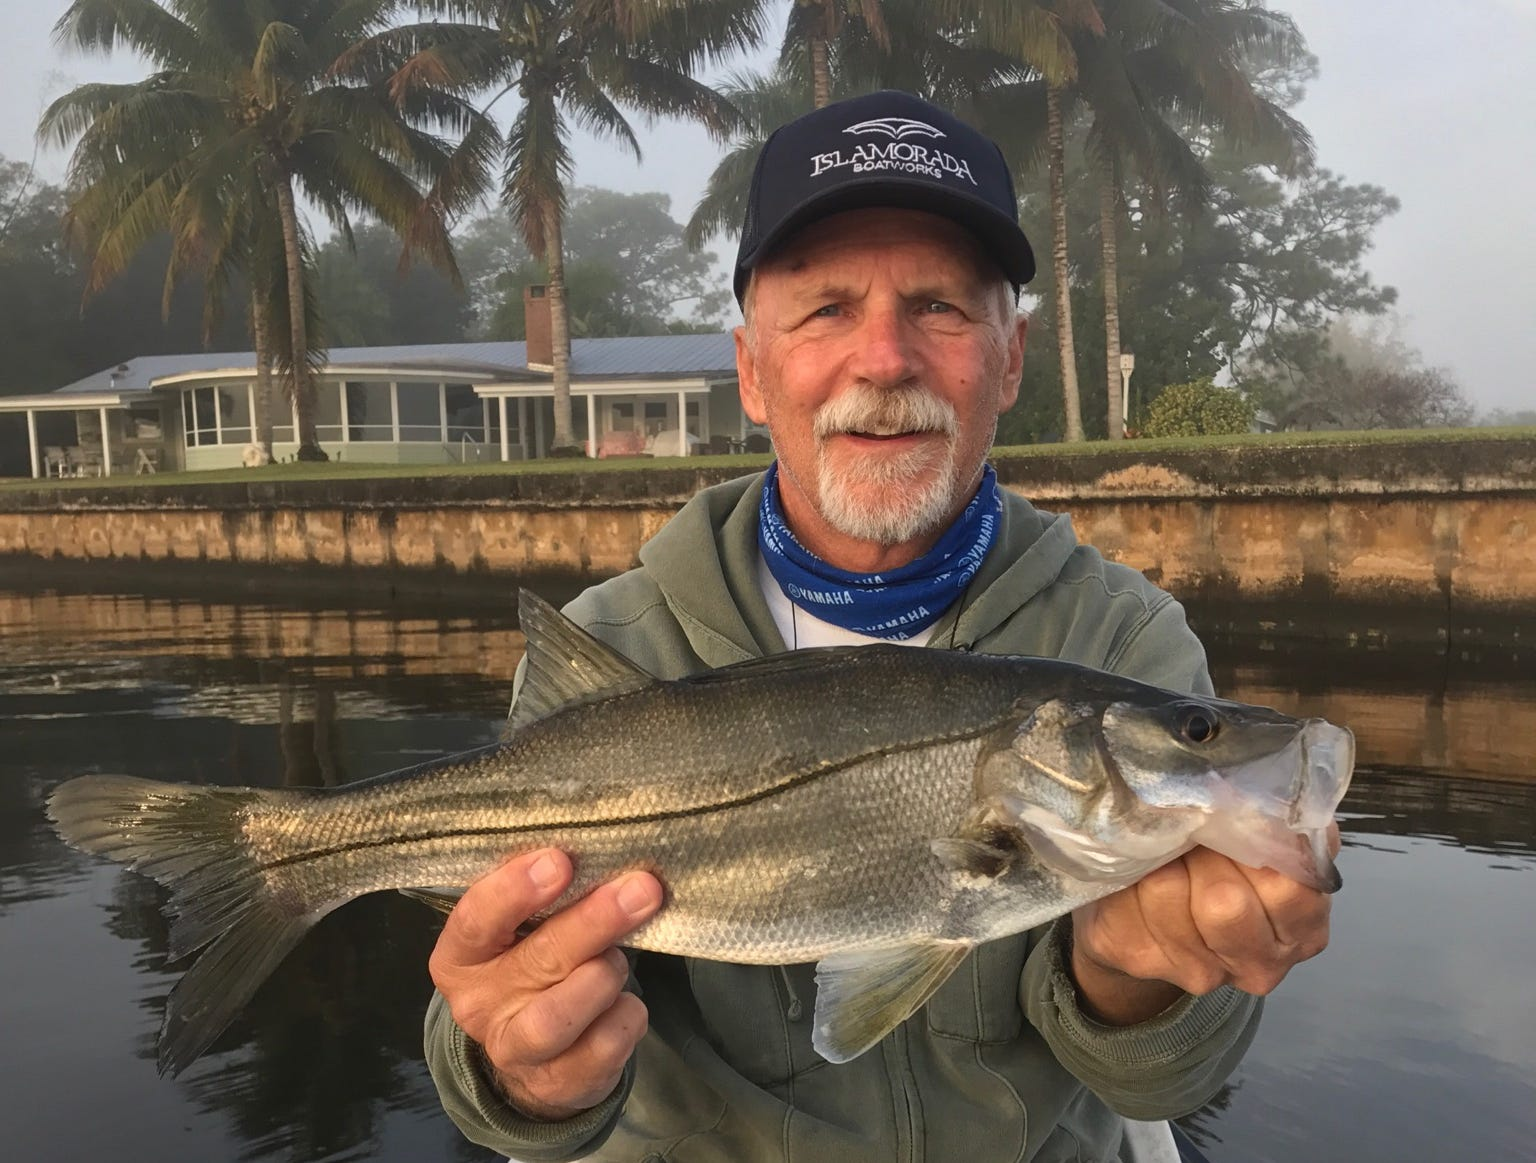 Bob Chew of Palm City caught and released this tarpon snook Sunday while fishing in the South Fork of the St. Lucie River.